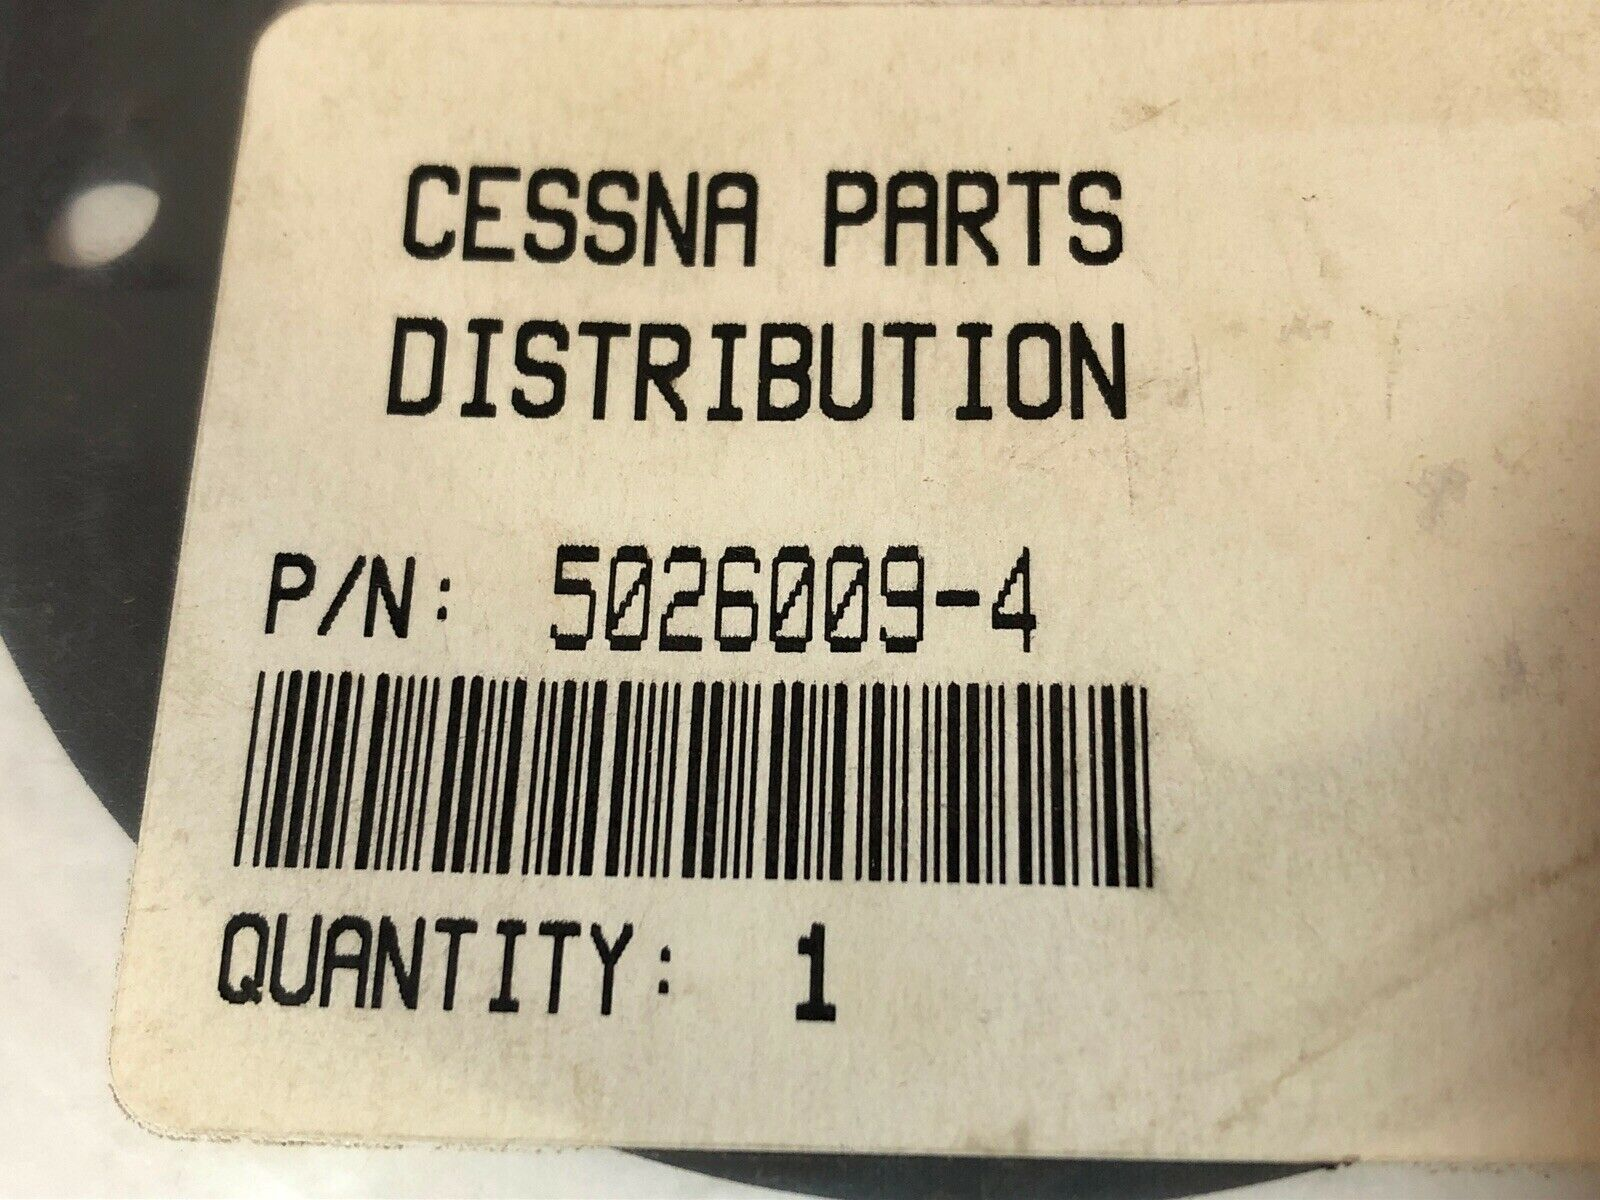 5026009-4 Gasket with 8130-3 Tag New Cessna Part No